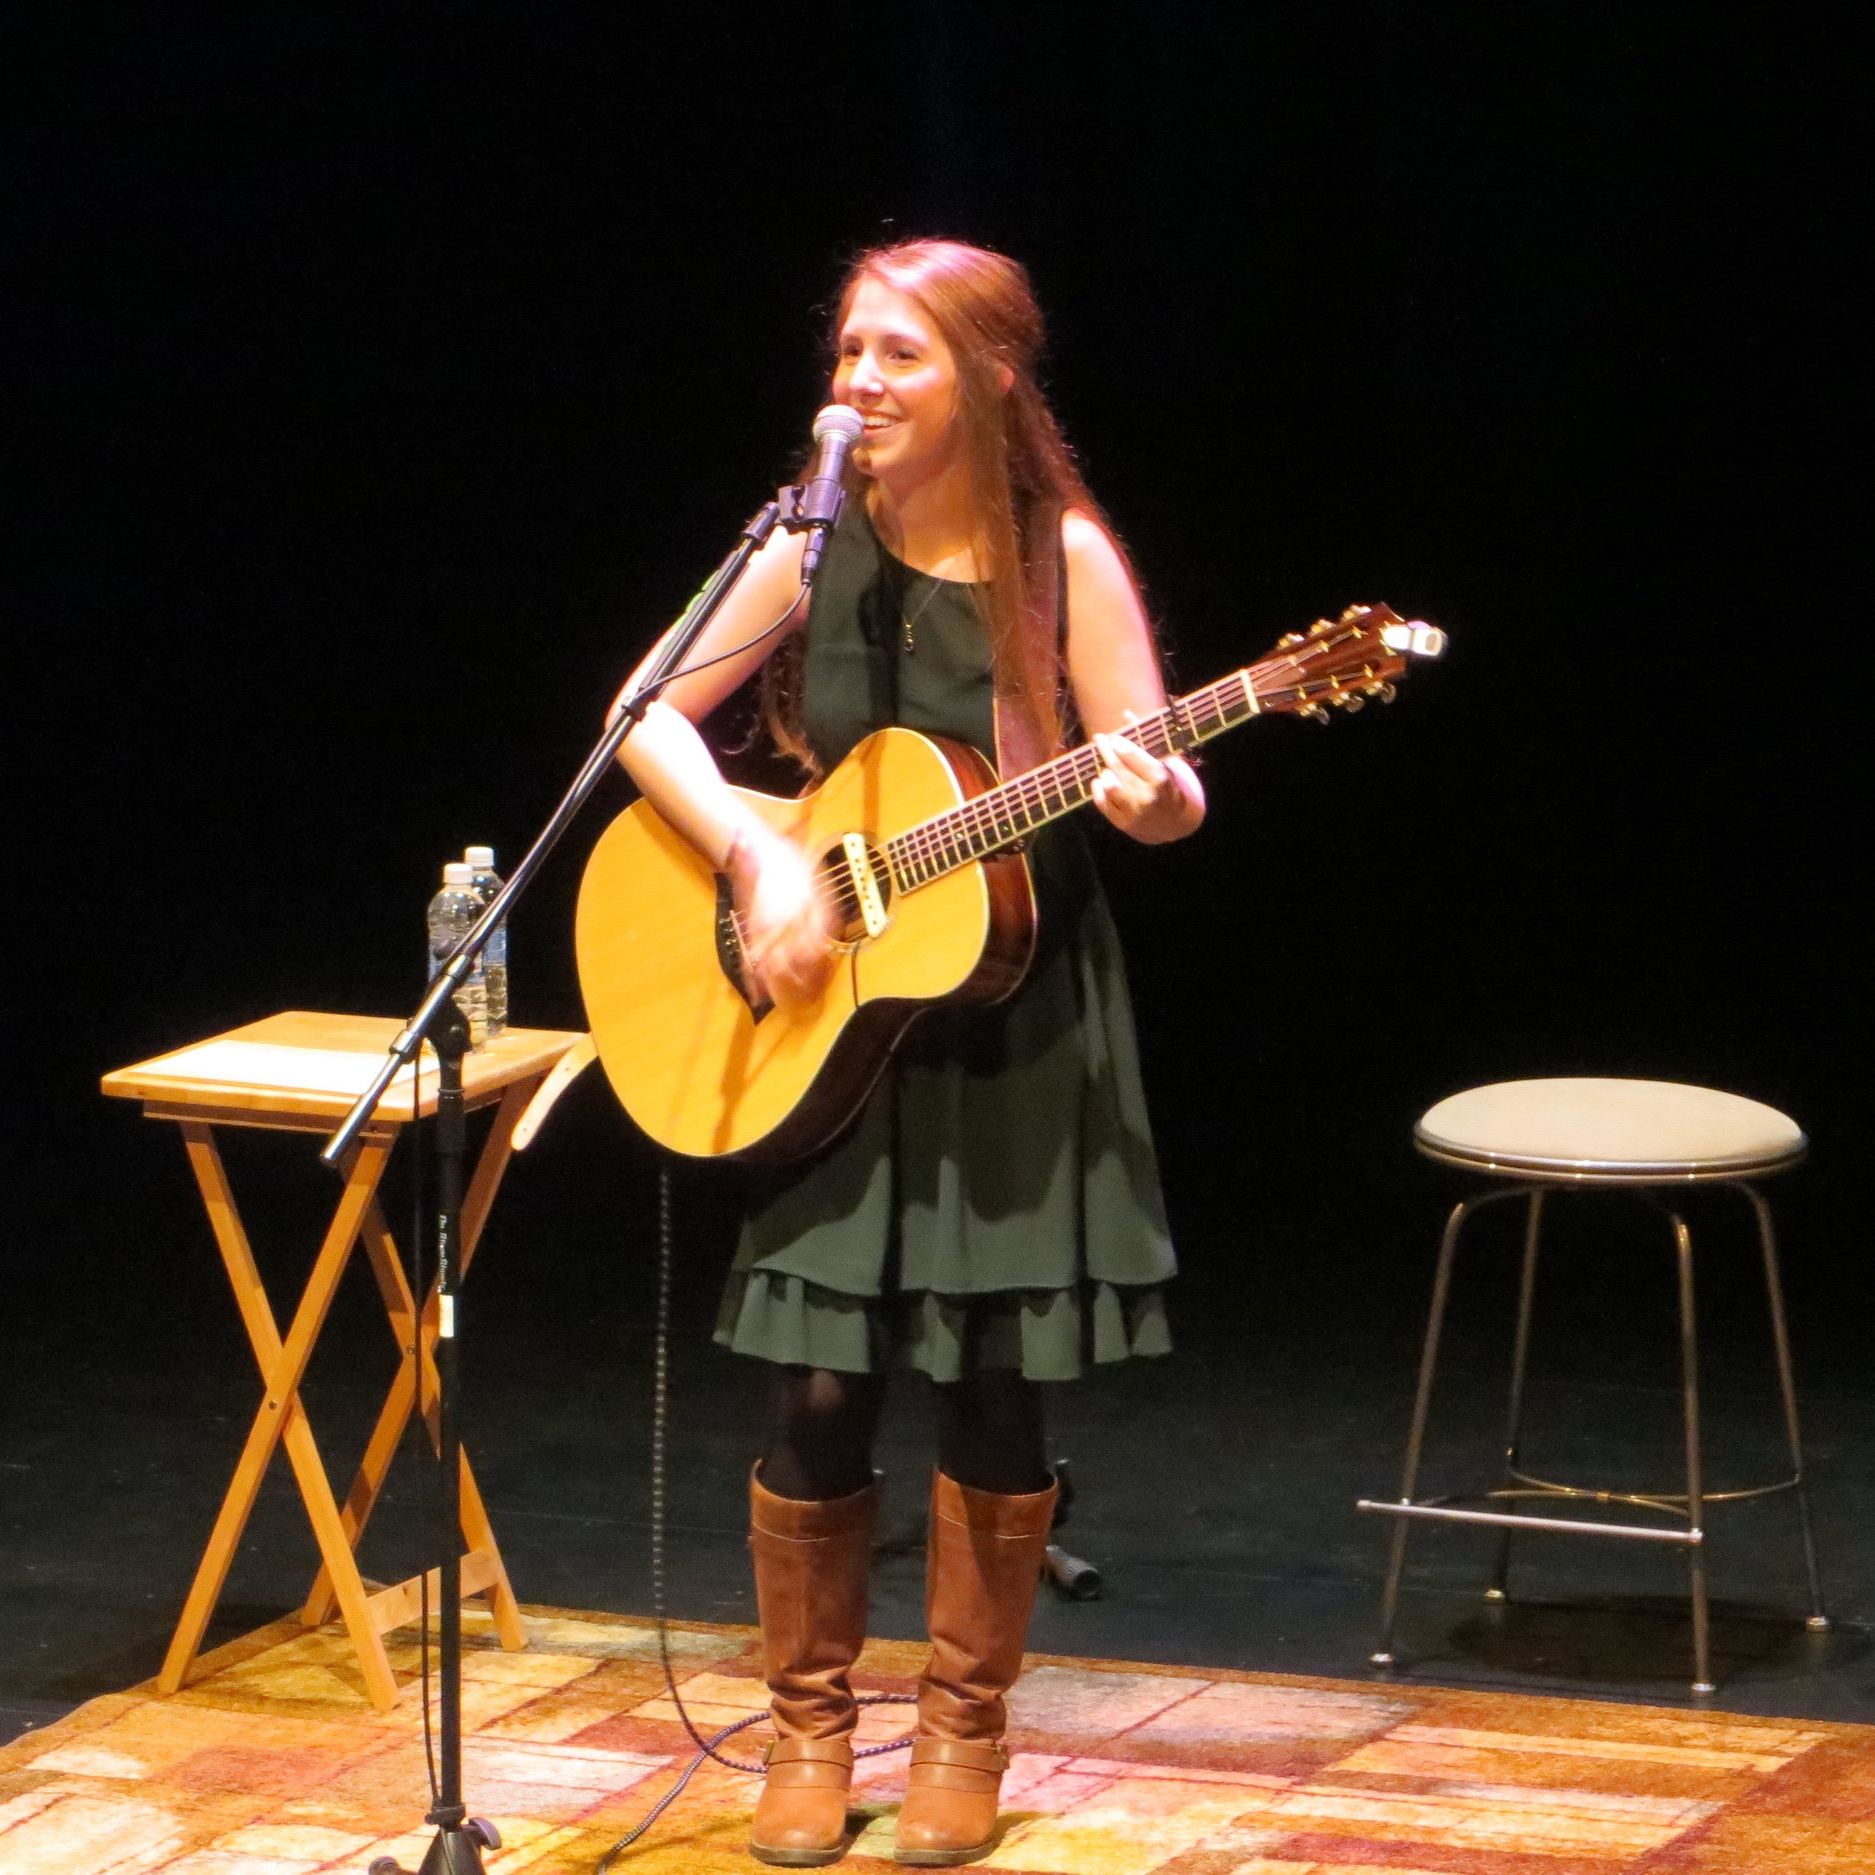 Brittany Jean at Snowy Owl Theater